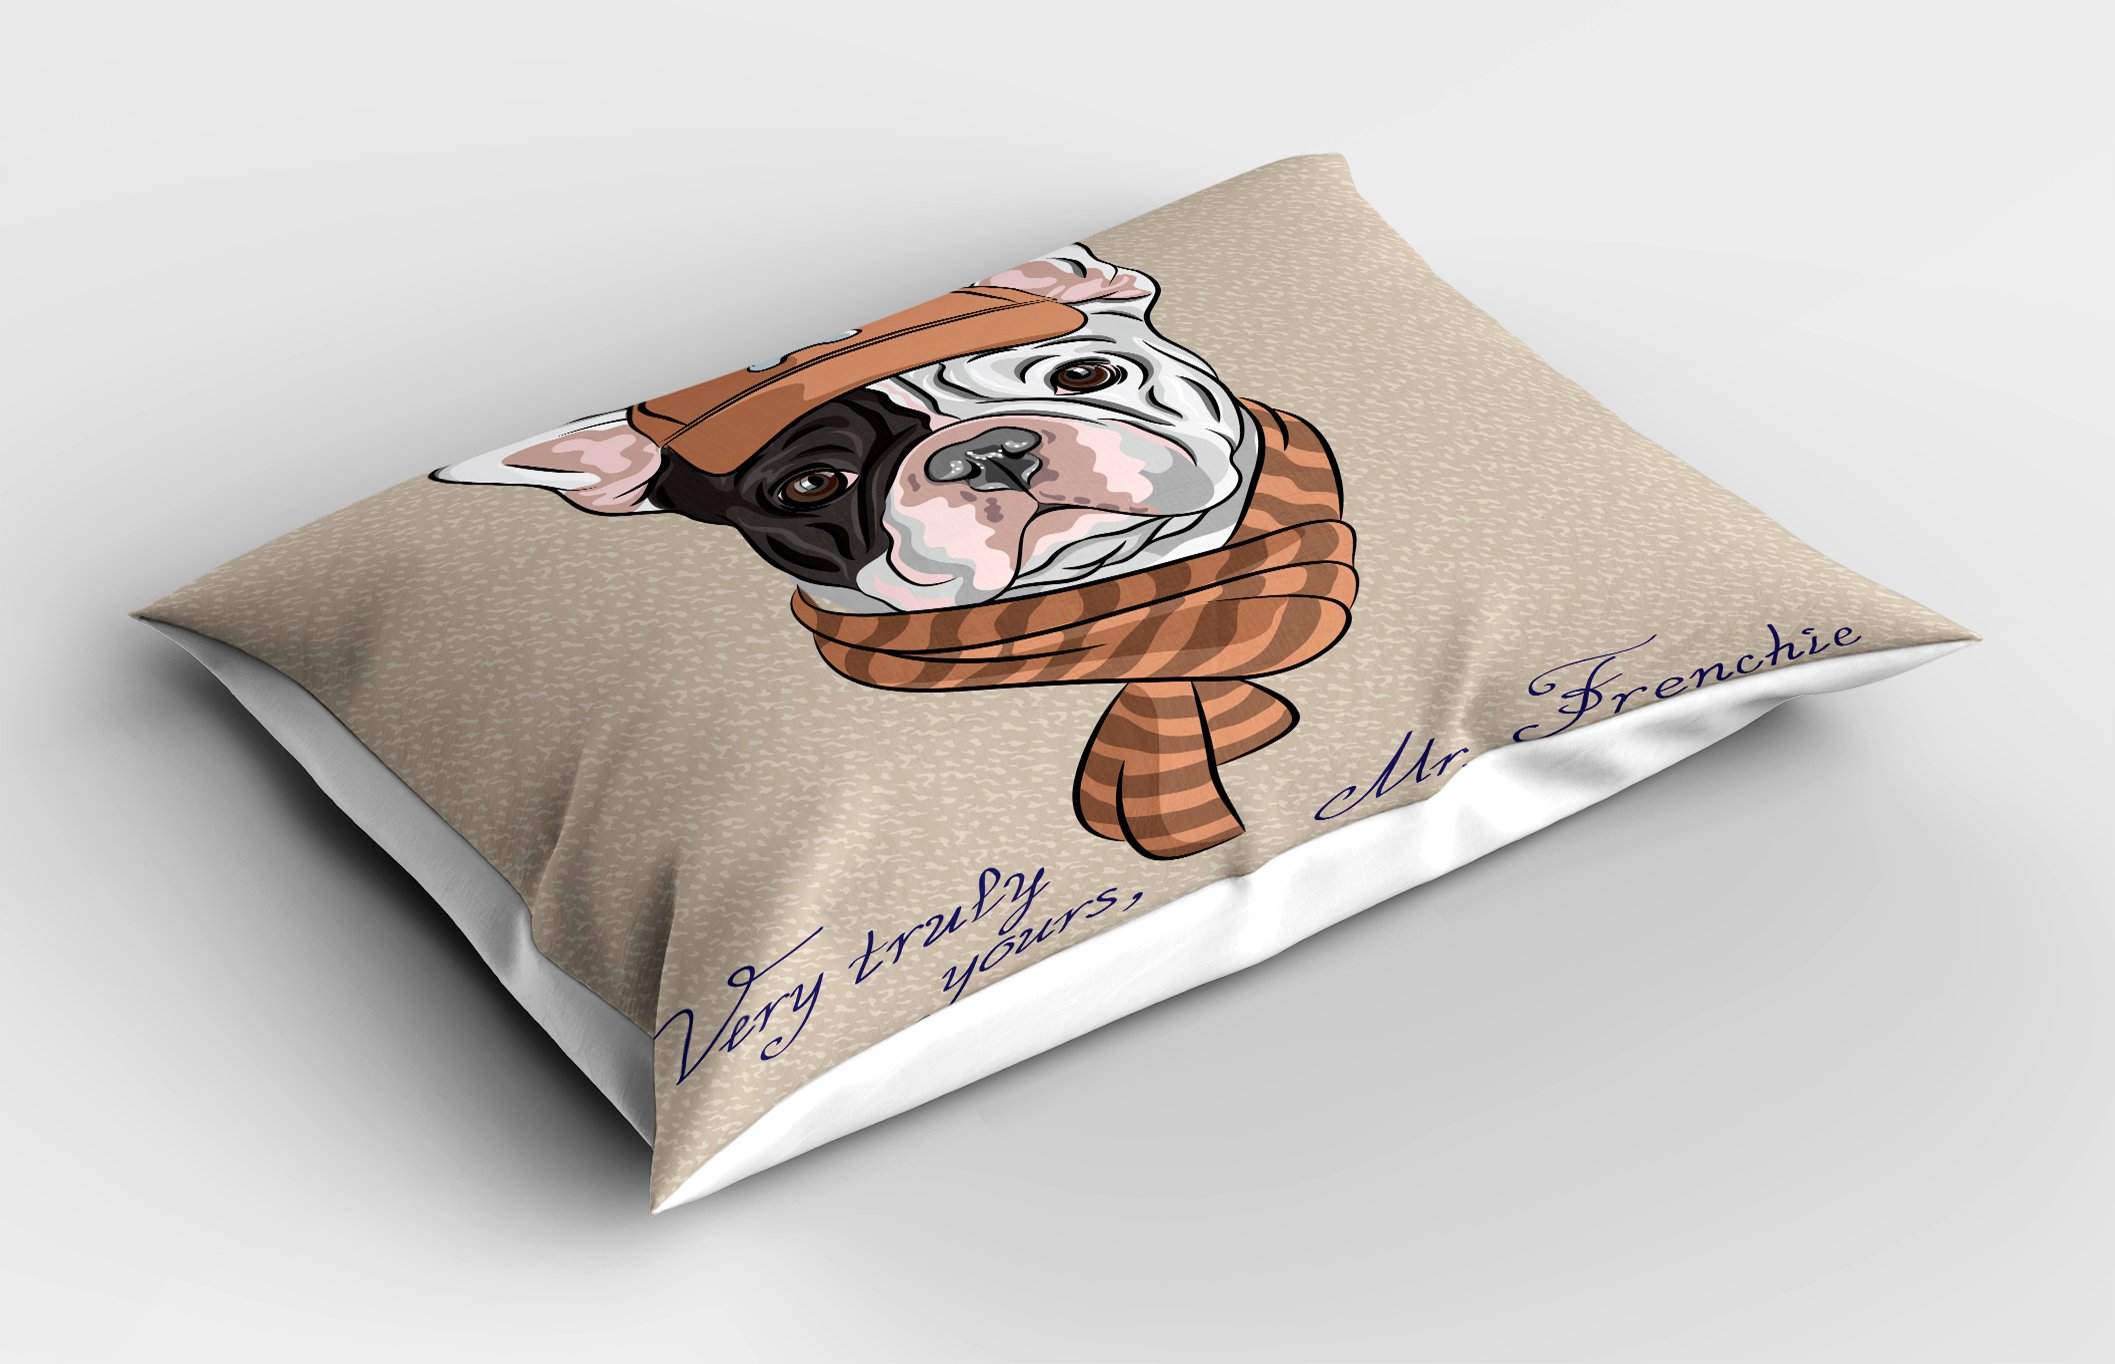 Ambesonne Vintage Pillow Sham, Funny Hipster French Bulldog with Cap and Lines Scarf Punk Animal Humor Art, Decorative Standard King Size Printed Pillowcase, 36 X 20 inches, Ecru Pink Brown by Ambesonne (Image #2)